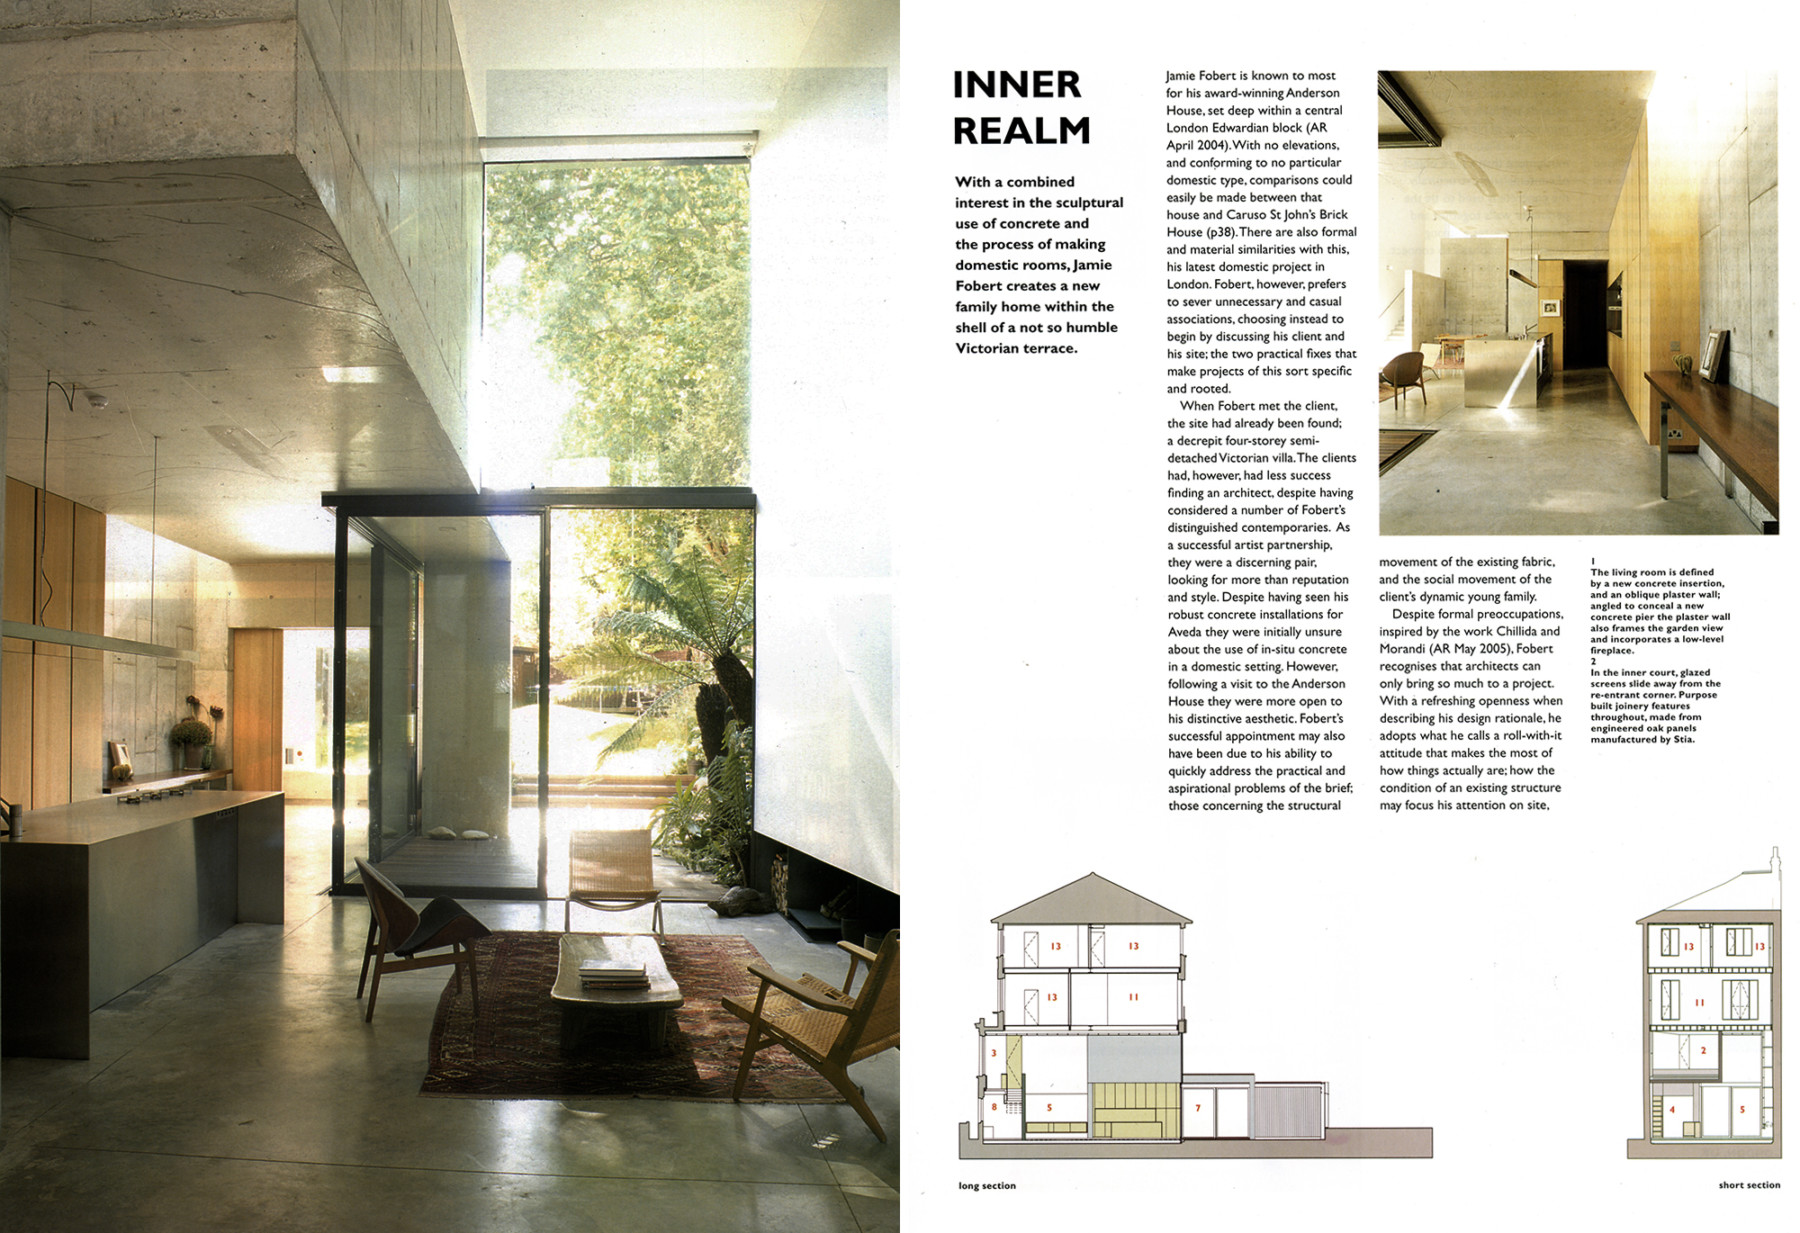 Jamie-Fobert-Architects-Kander-House-Inner-Realm-Article